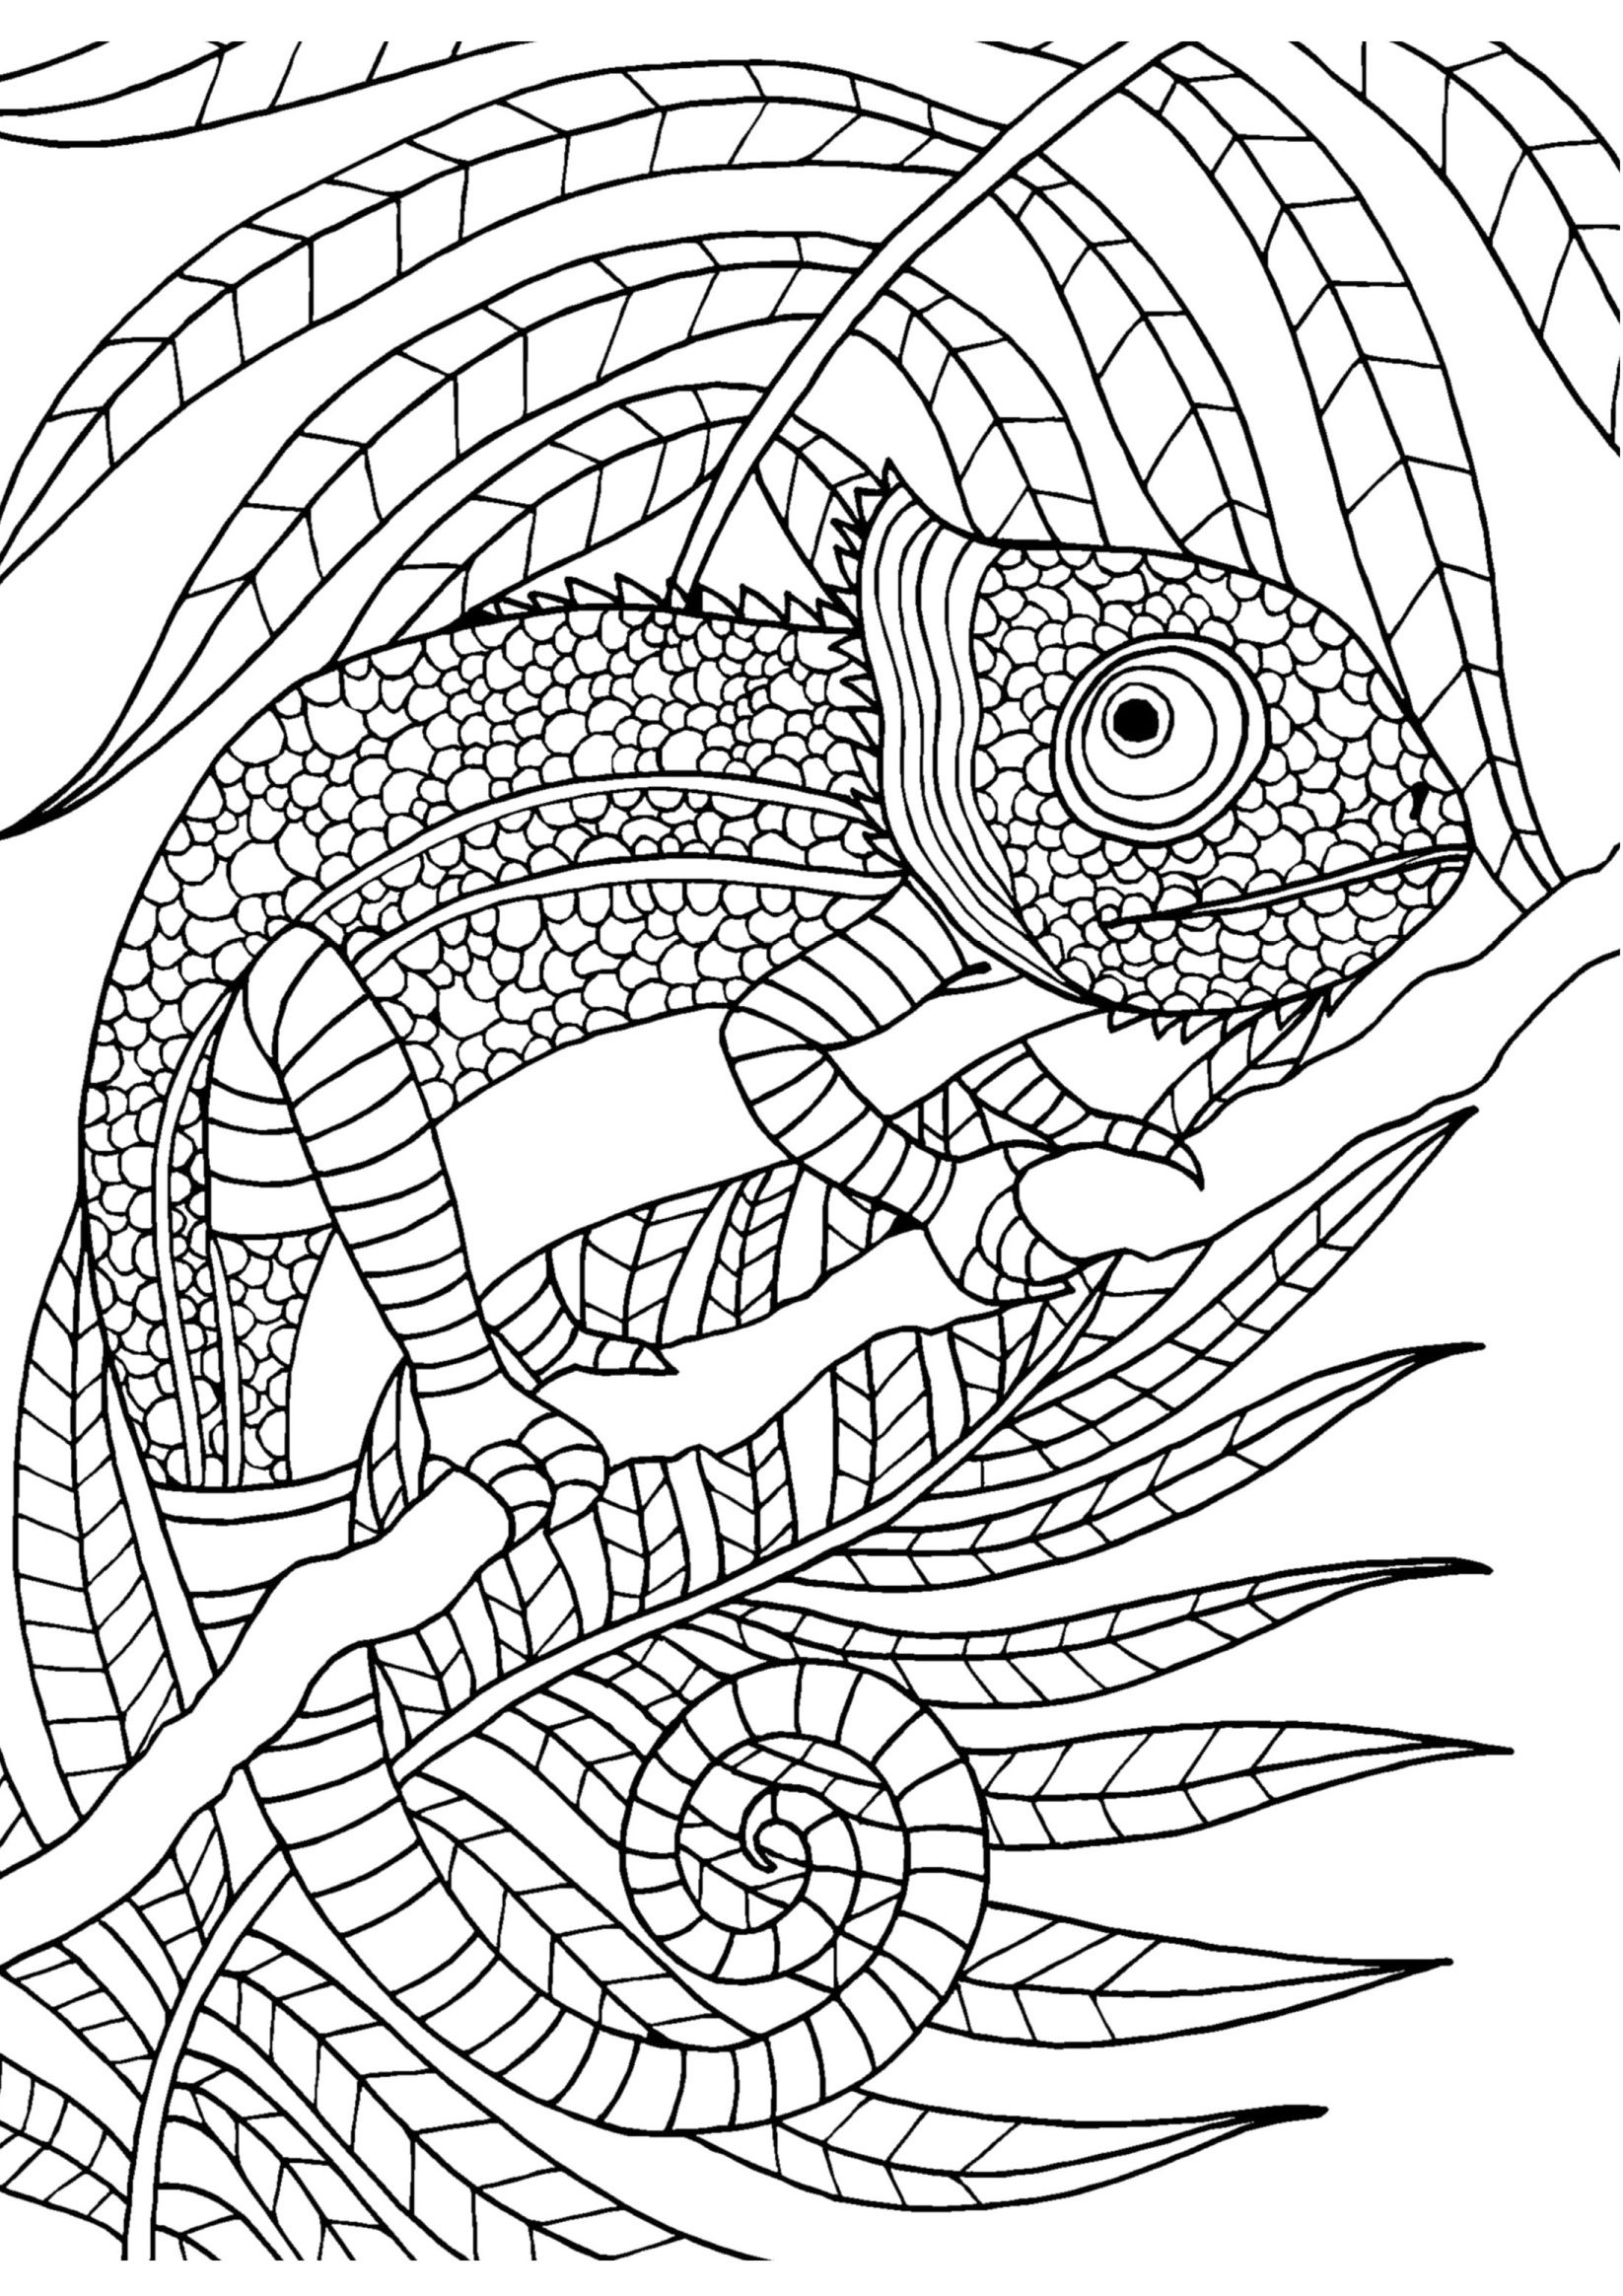 Adults colouring book pages - Chameleon Adult Colouring Page Colouring In Sheets Art Craft Art Supplies I